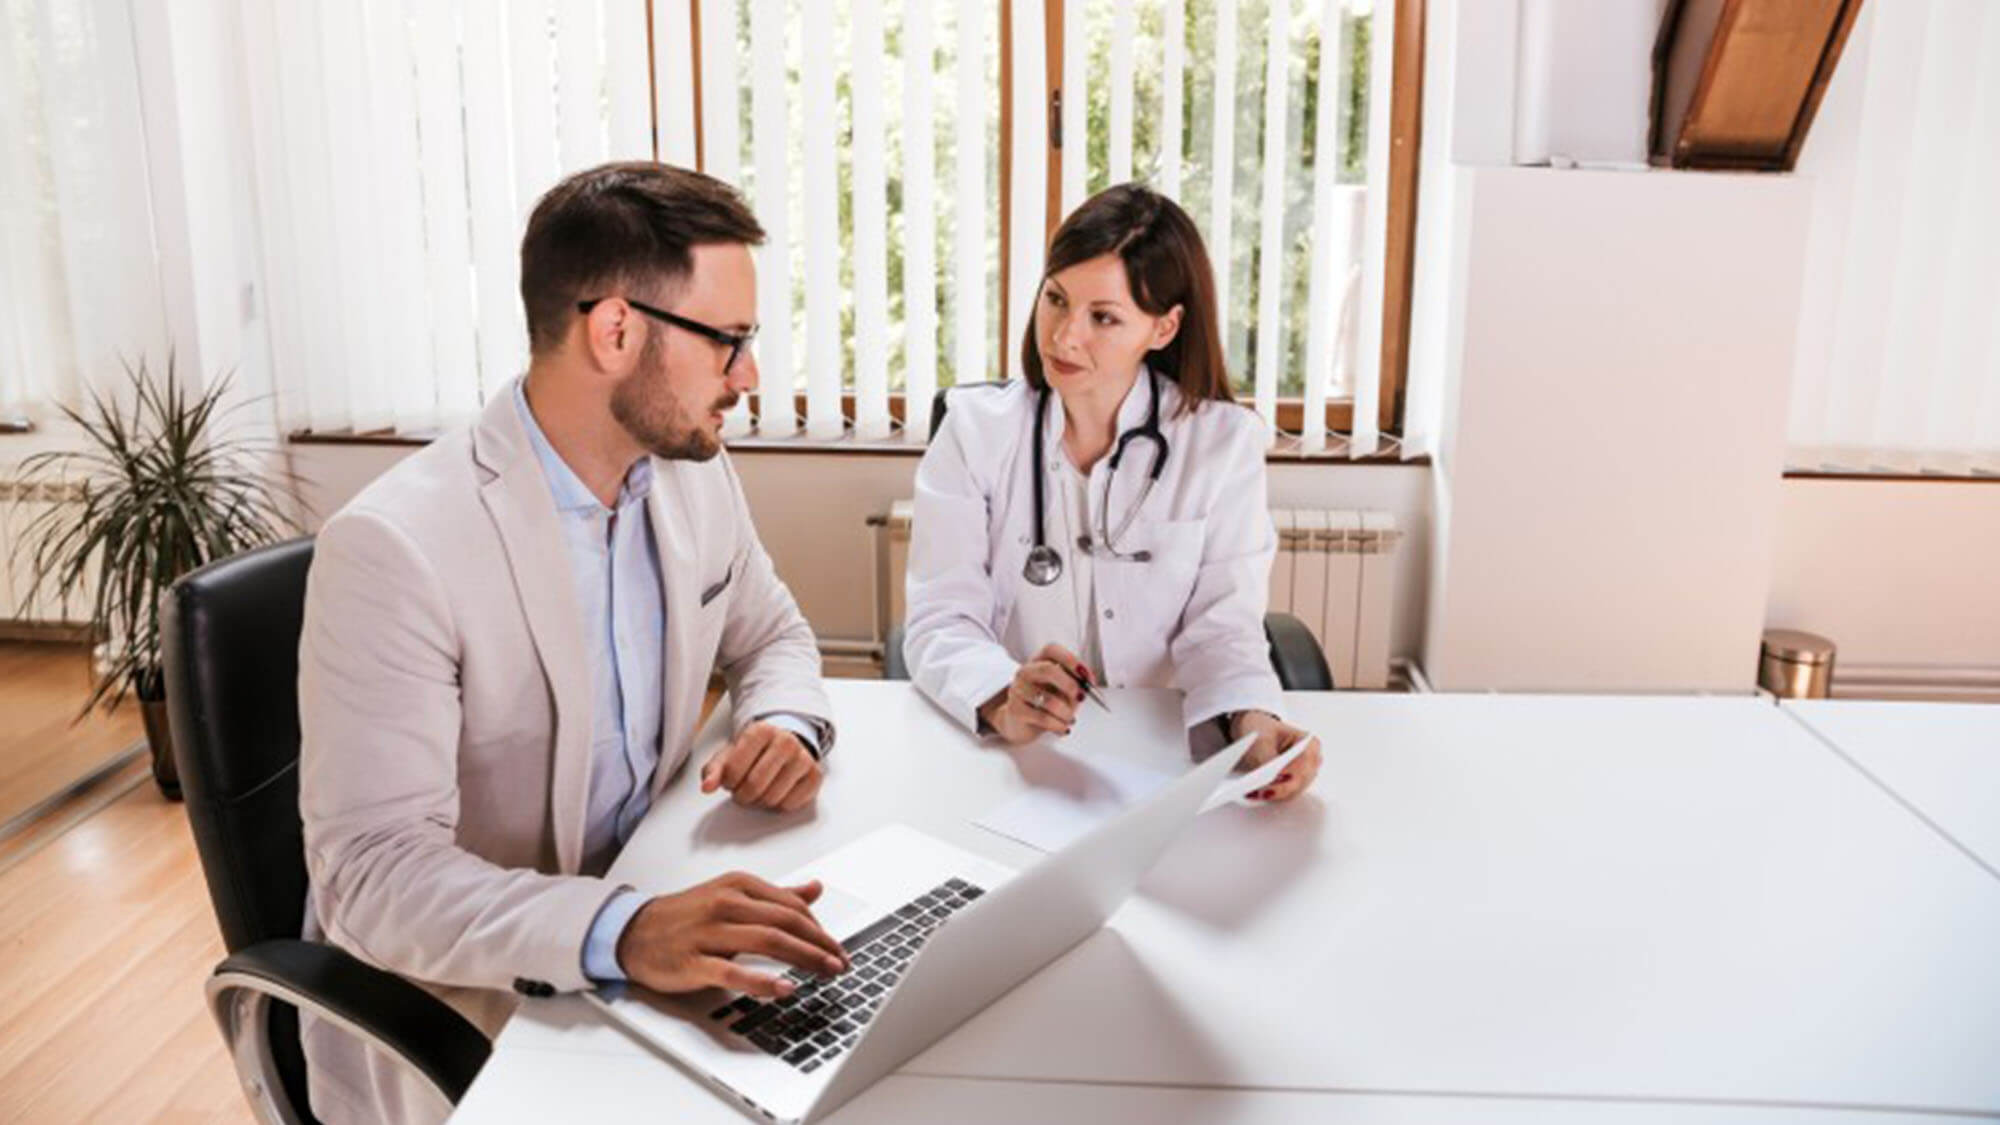 Healthcare marketing manager discusses strategy with doctor.